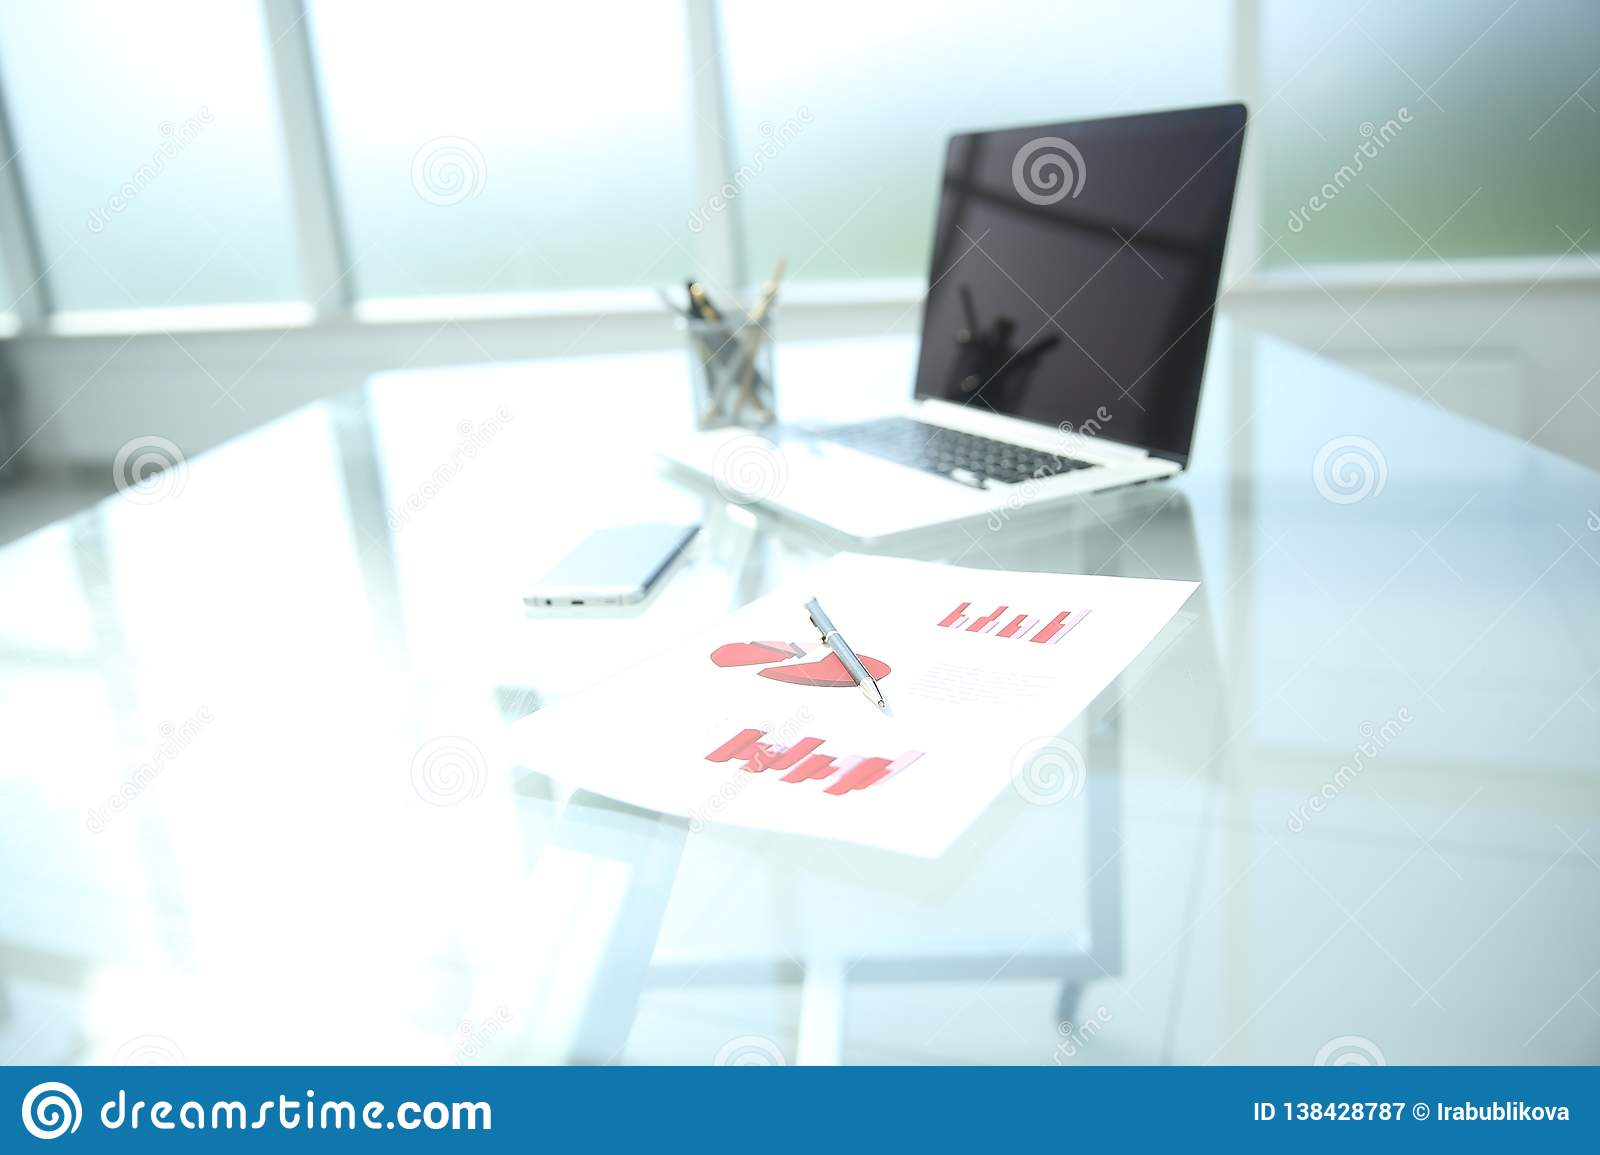 Background image is a financial chart and a pen on the table